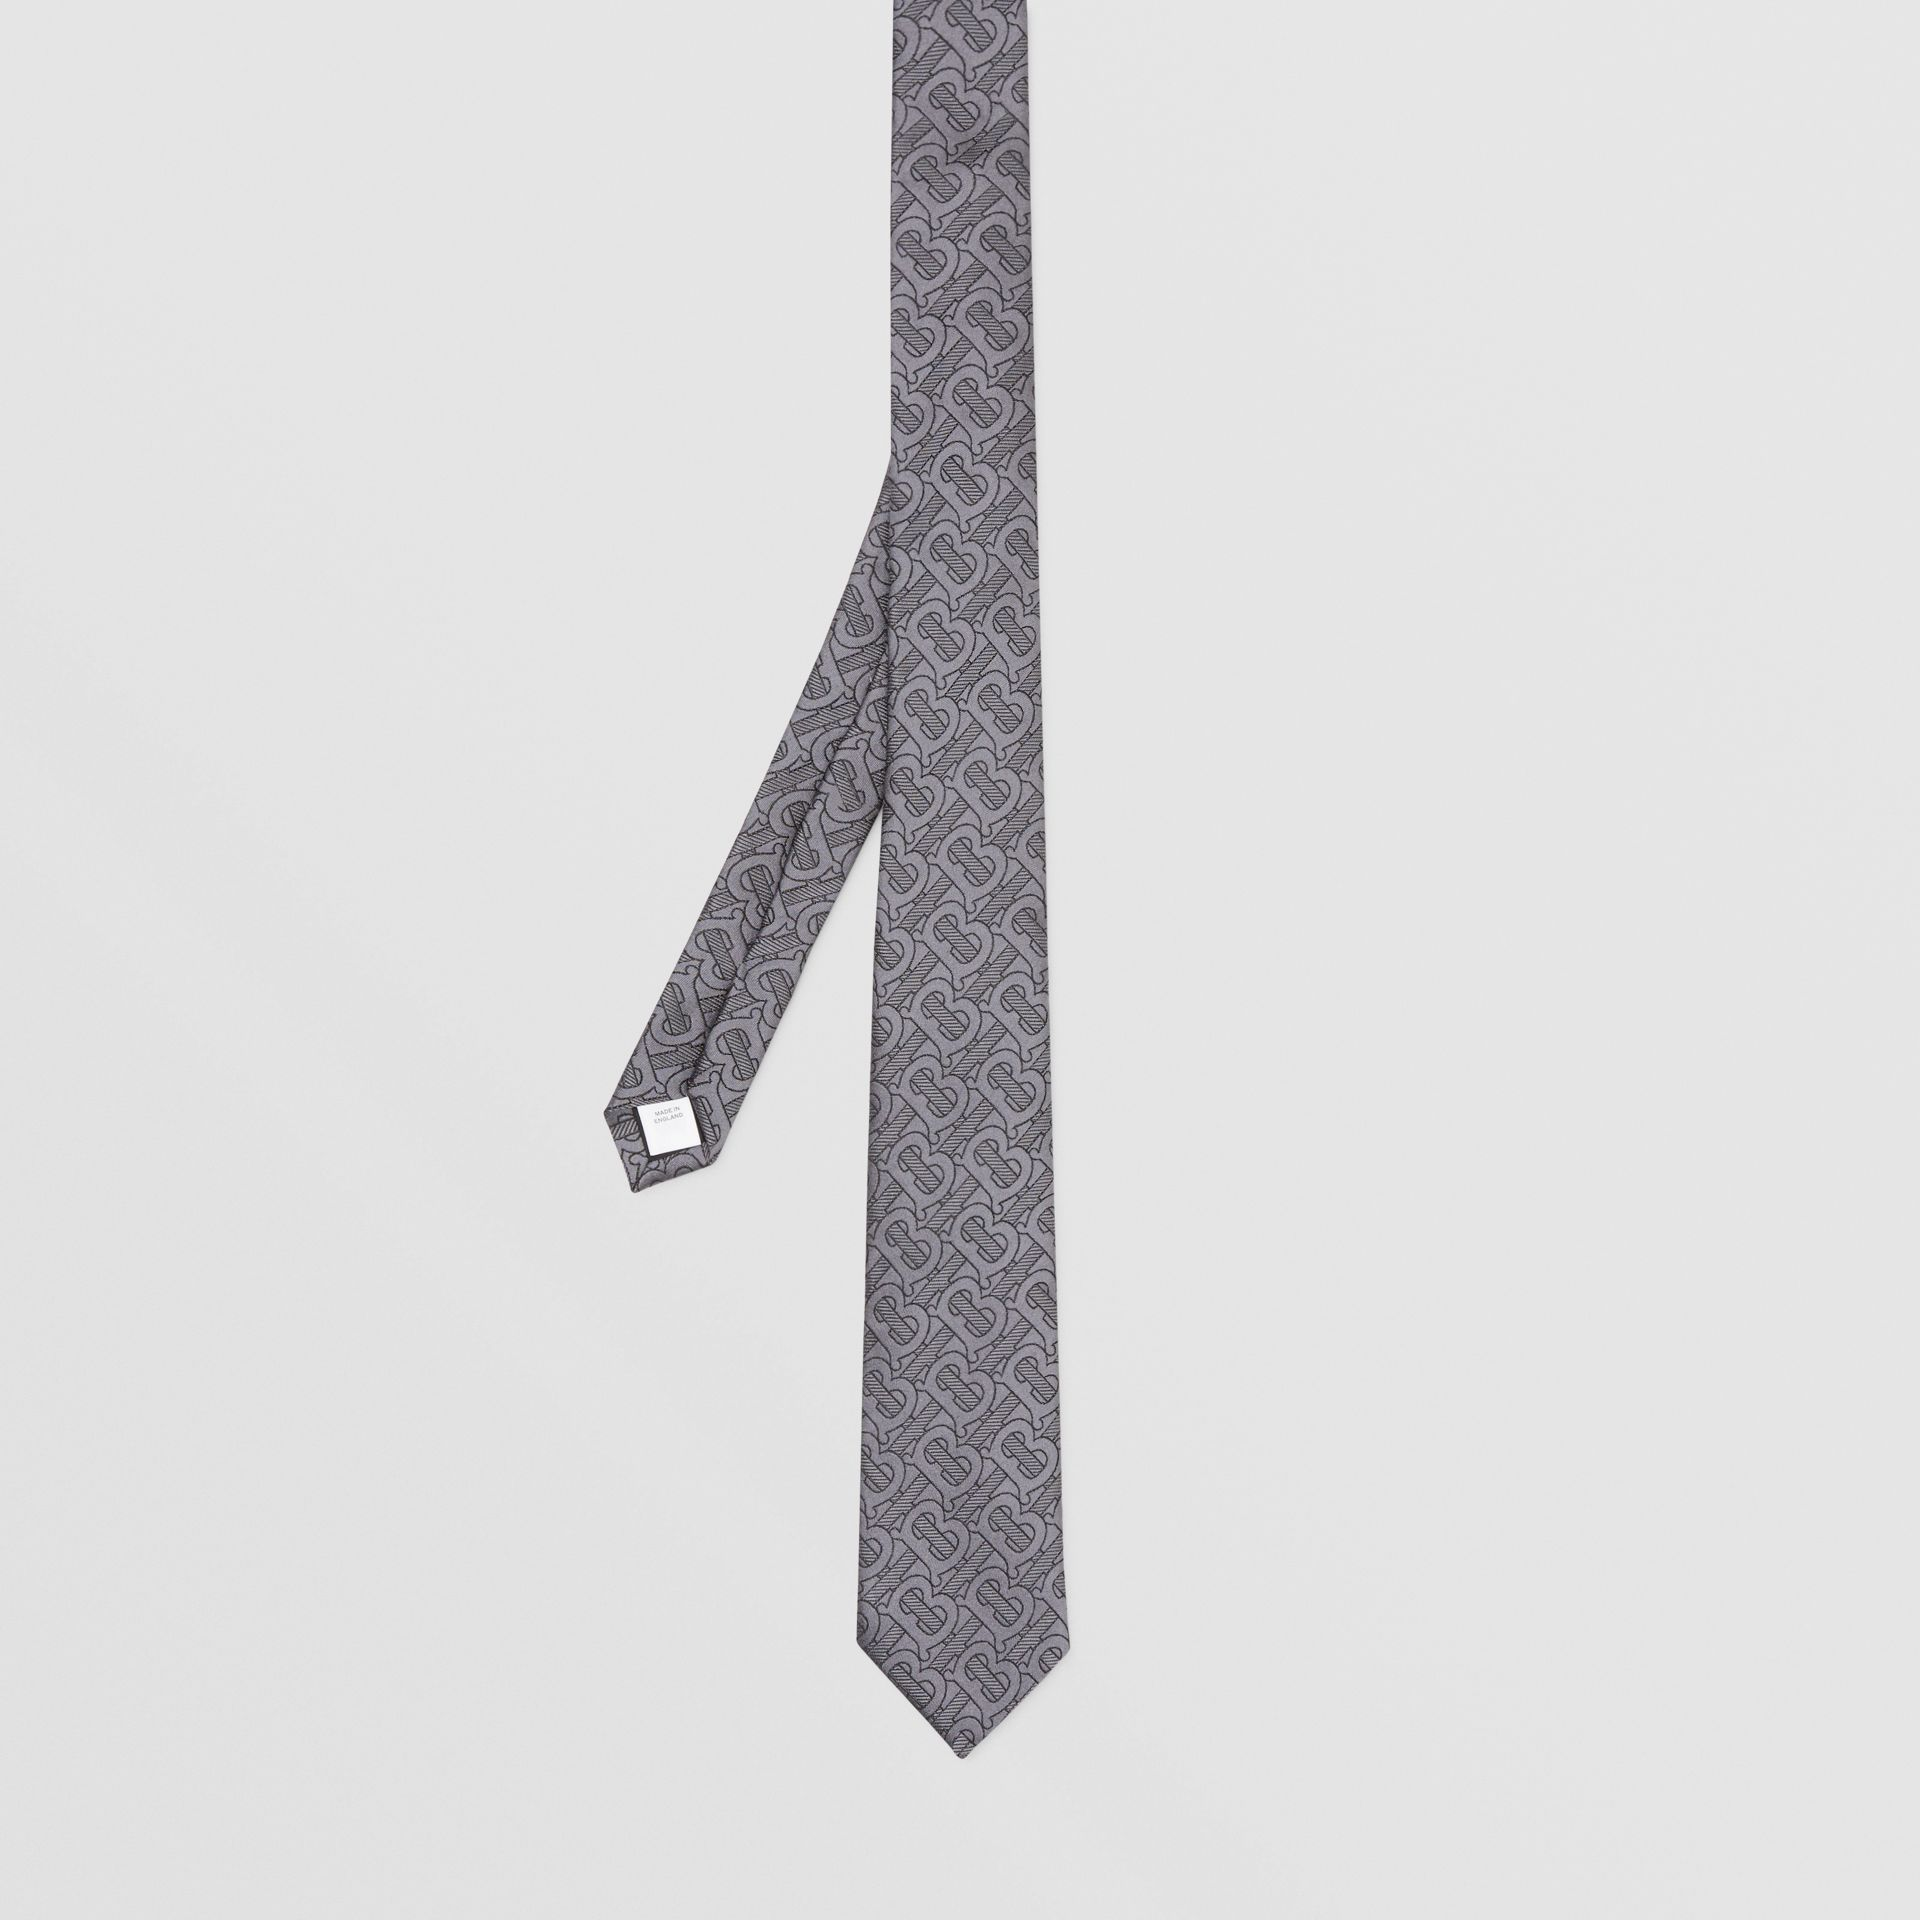 Classic Cut Monogram Silk Blend Jacquard Tie in Charcoal - Men | Burberry Hong Kong S.A.R - gallery image 4